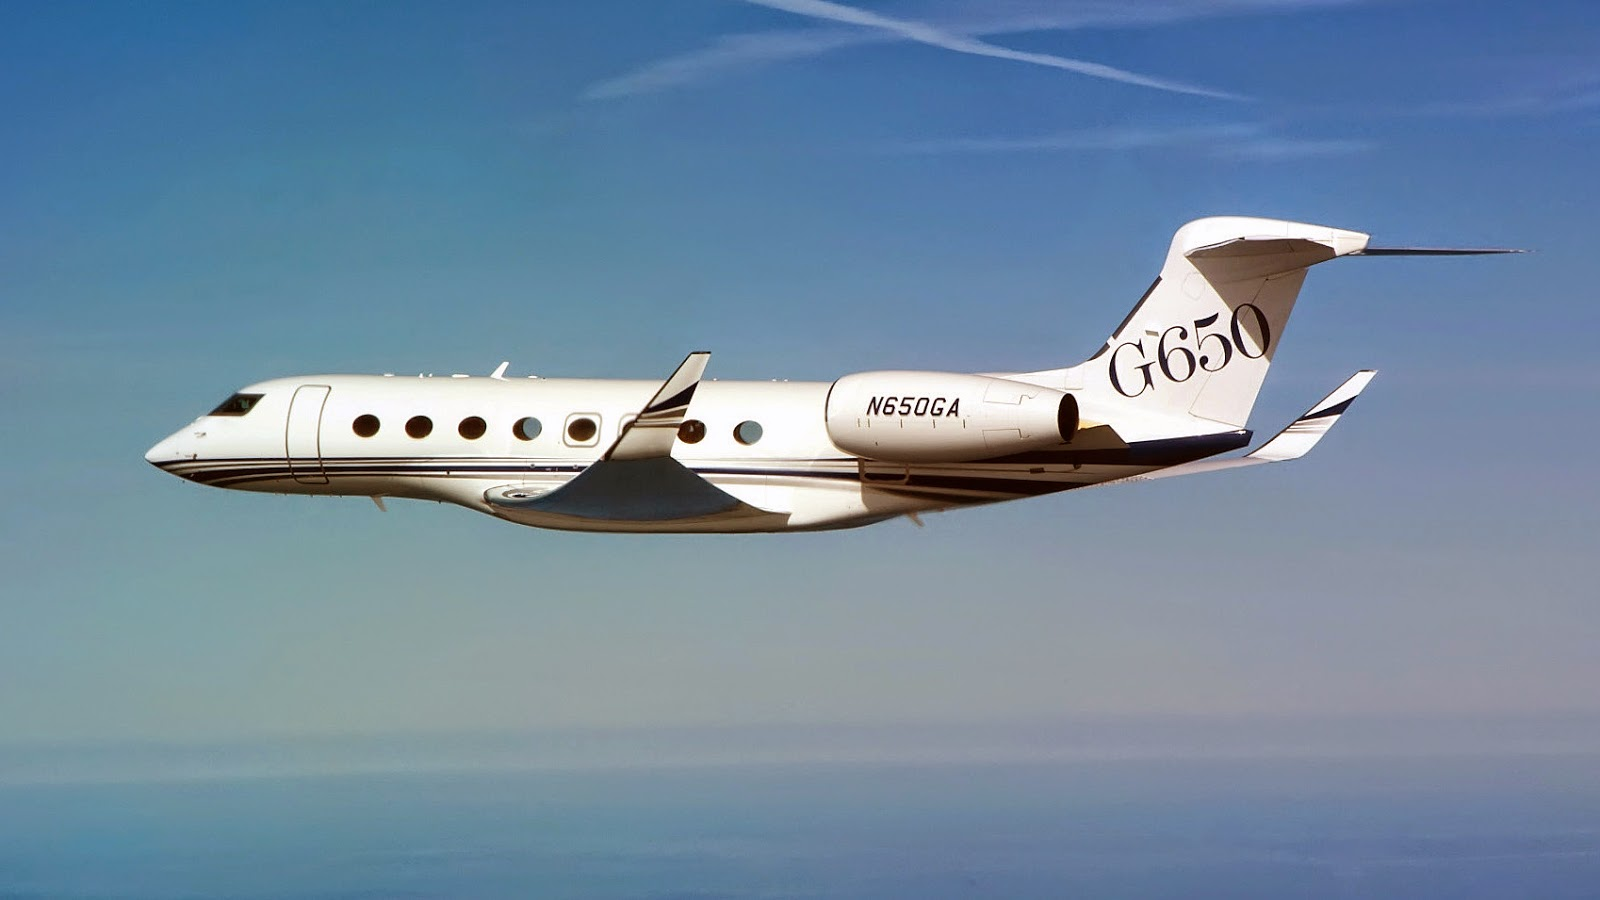 Gulfstream g650 review better than the best gl private jets Airplane cabin noise